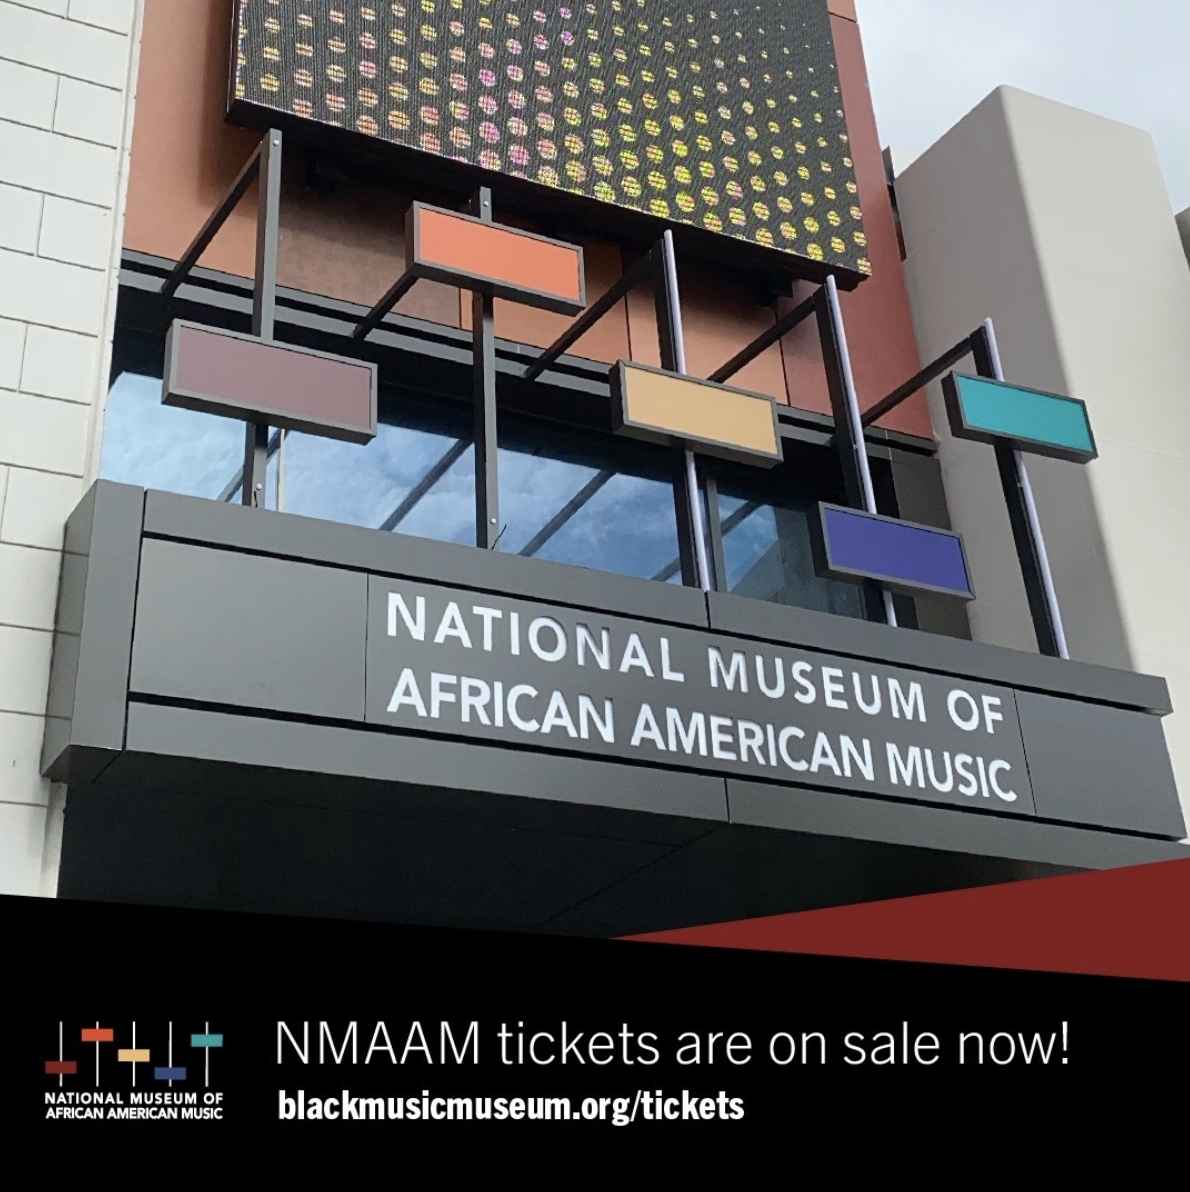 The National Museum of African American Museum Opened in Nashville! Time to Support Our Newest Great Museum.